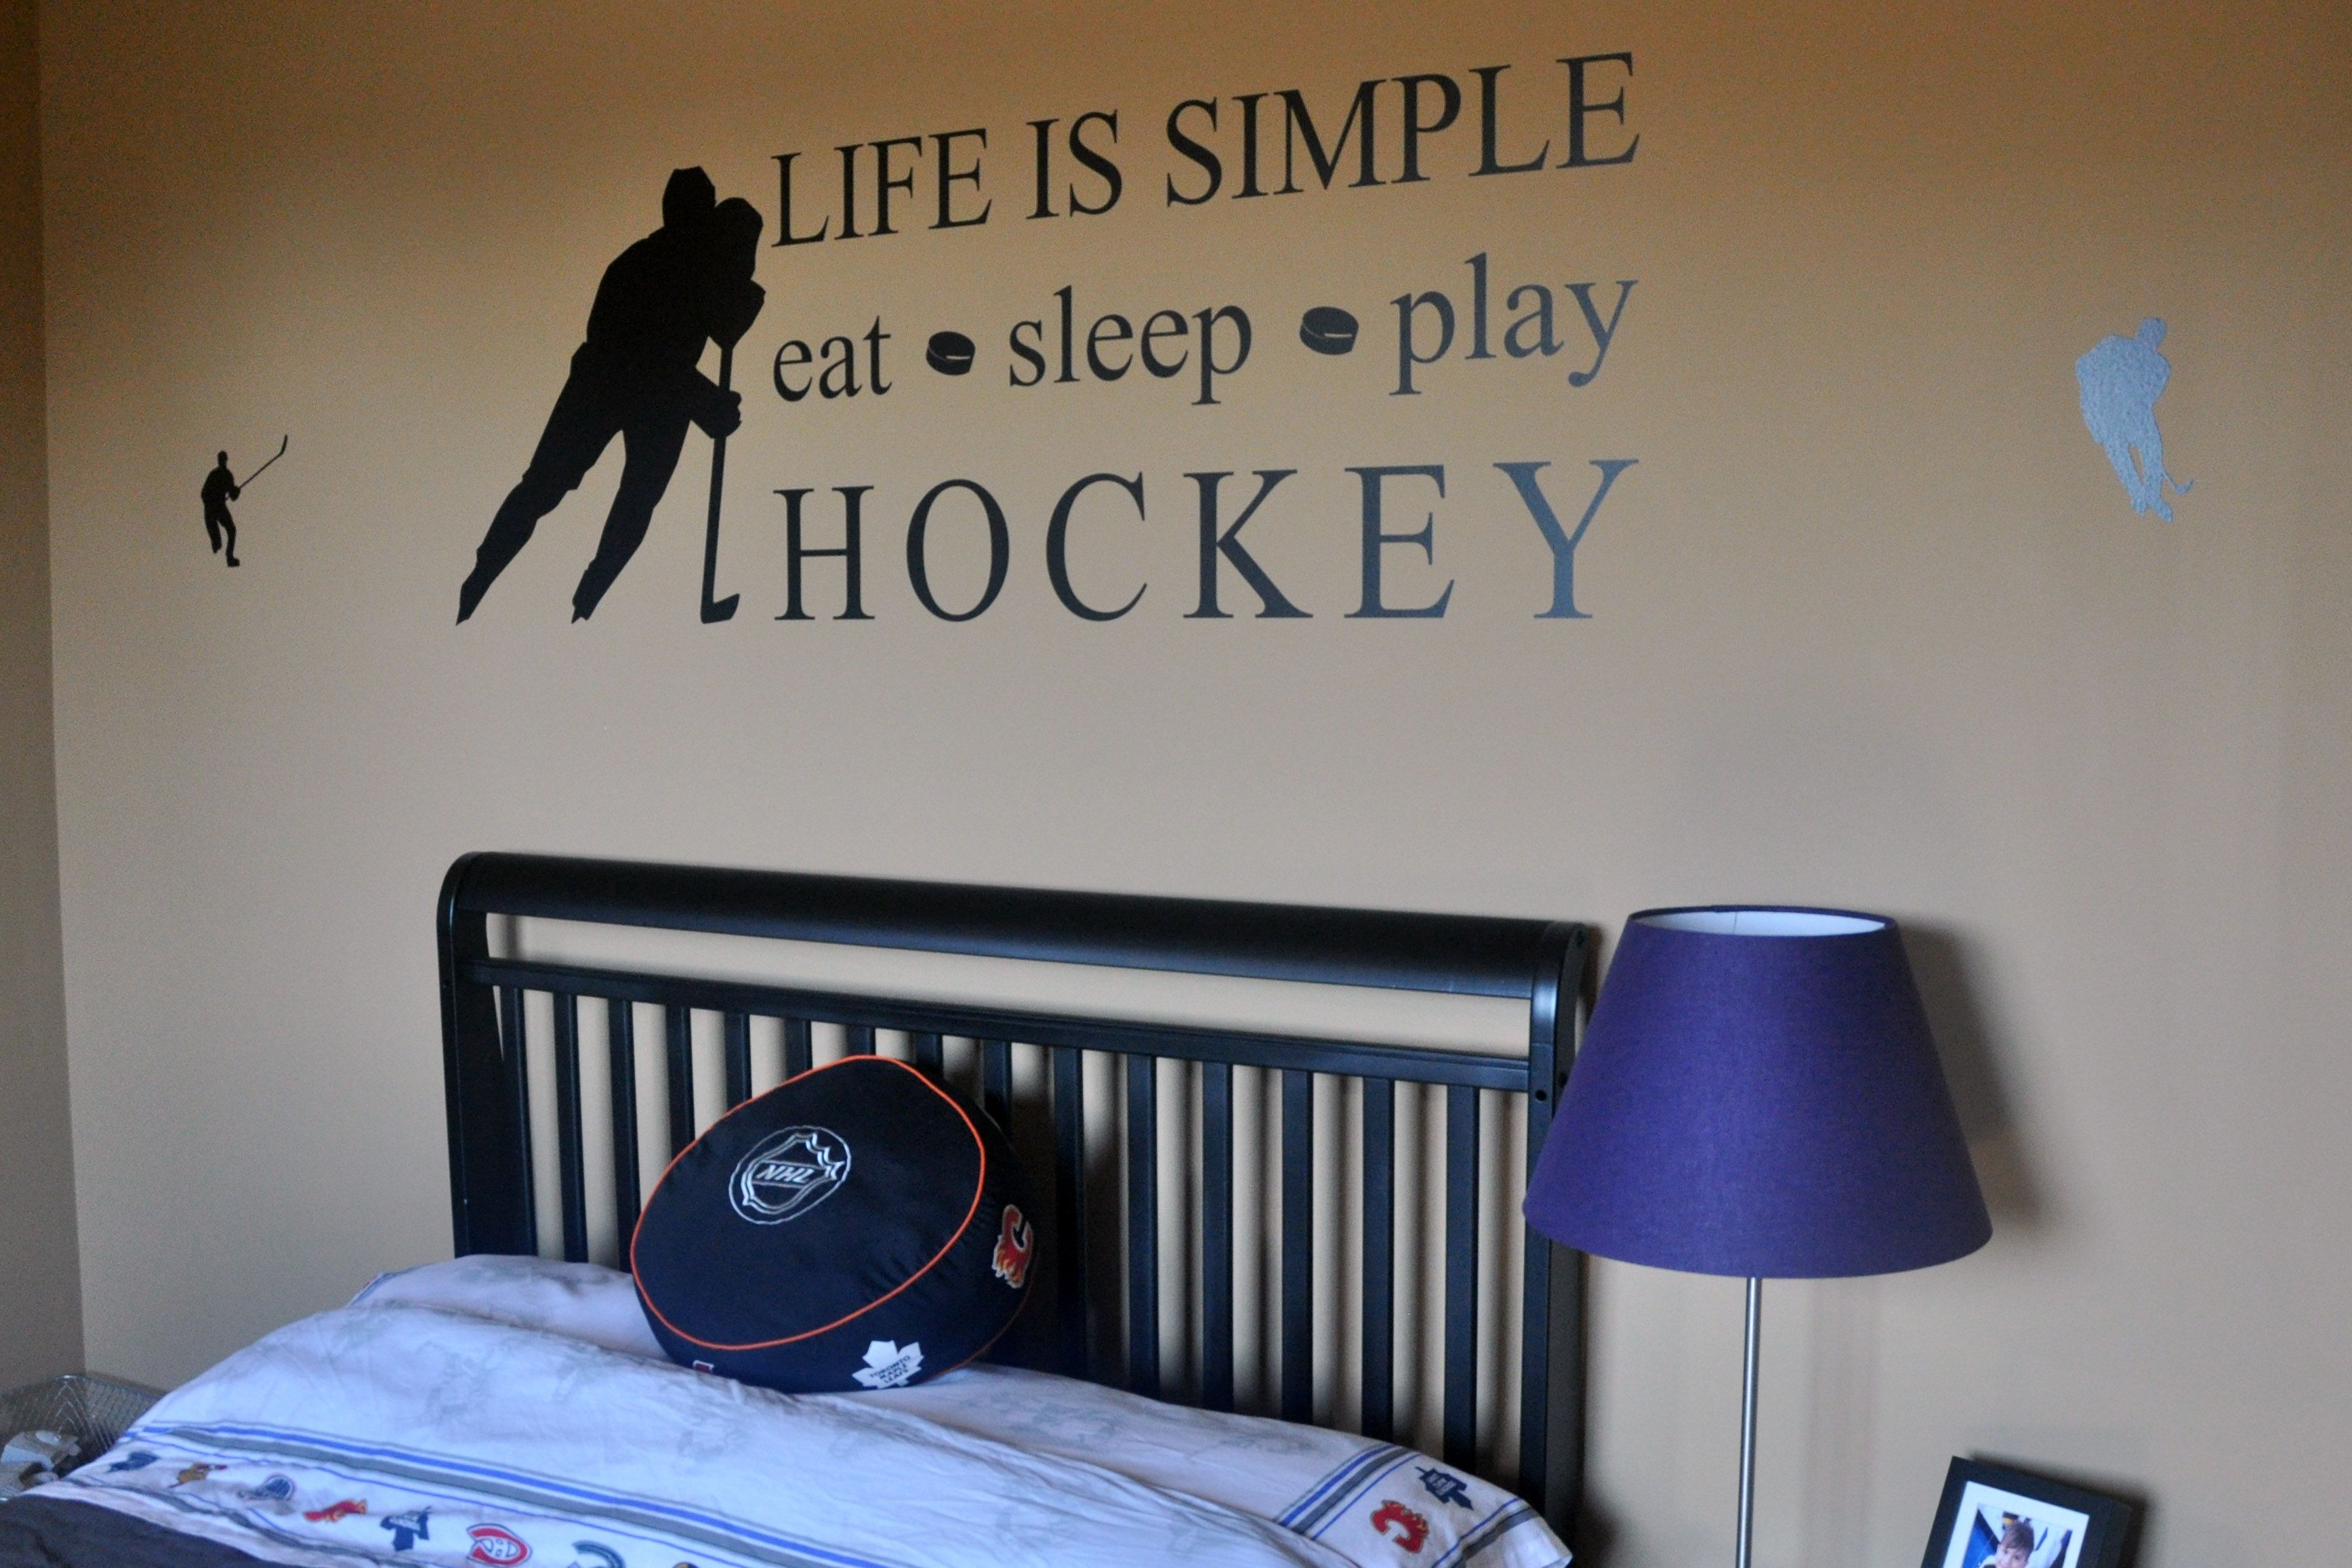 Boys hockey bedroom ideas - 17 Images About Hockey Room Ideas On Pinterest Nylon Carpet Hockey Room And Hockey Players